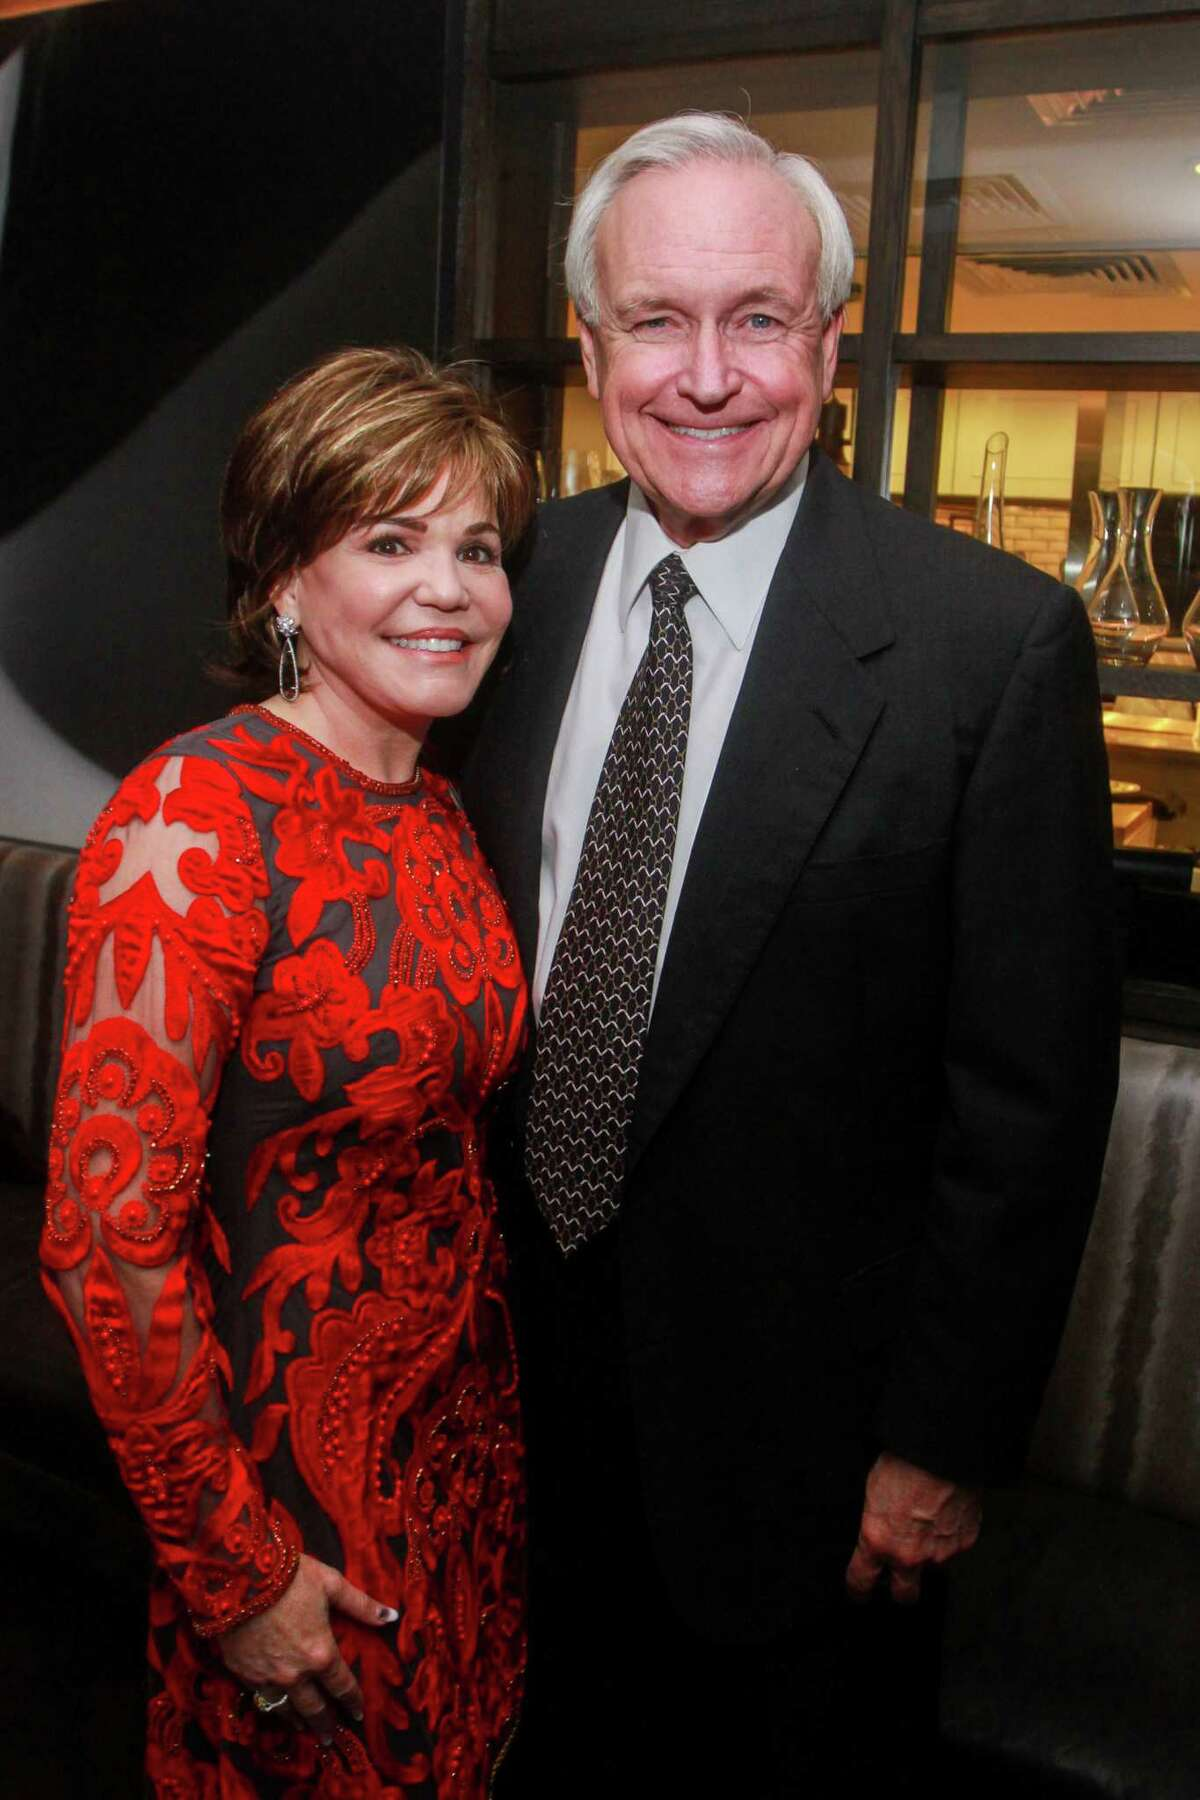 Hallie Vanderhider and Bill King at the dinner hosted by Becca Cason Thrash at Steak 48 benefiting restoration efforts of Notre Dame on January 21, 2020.